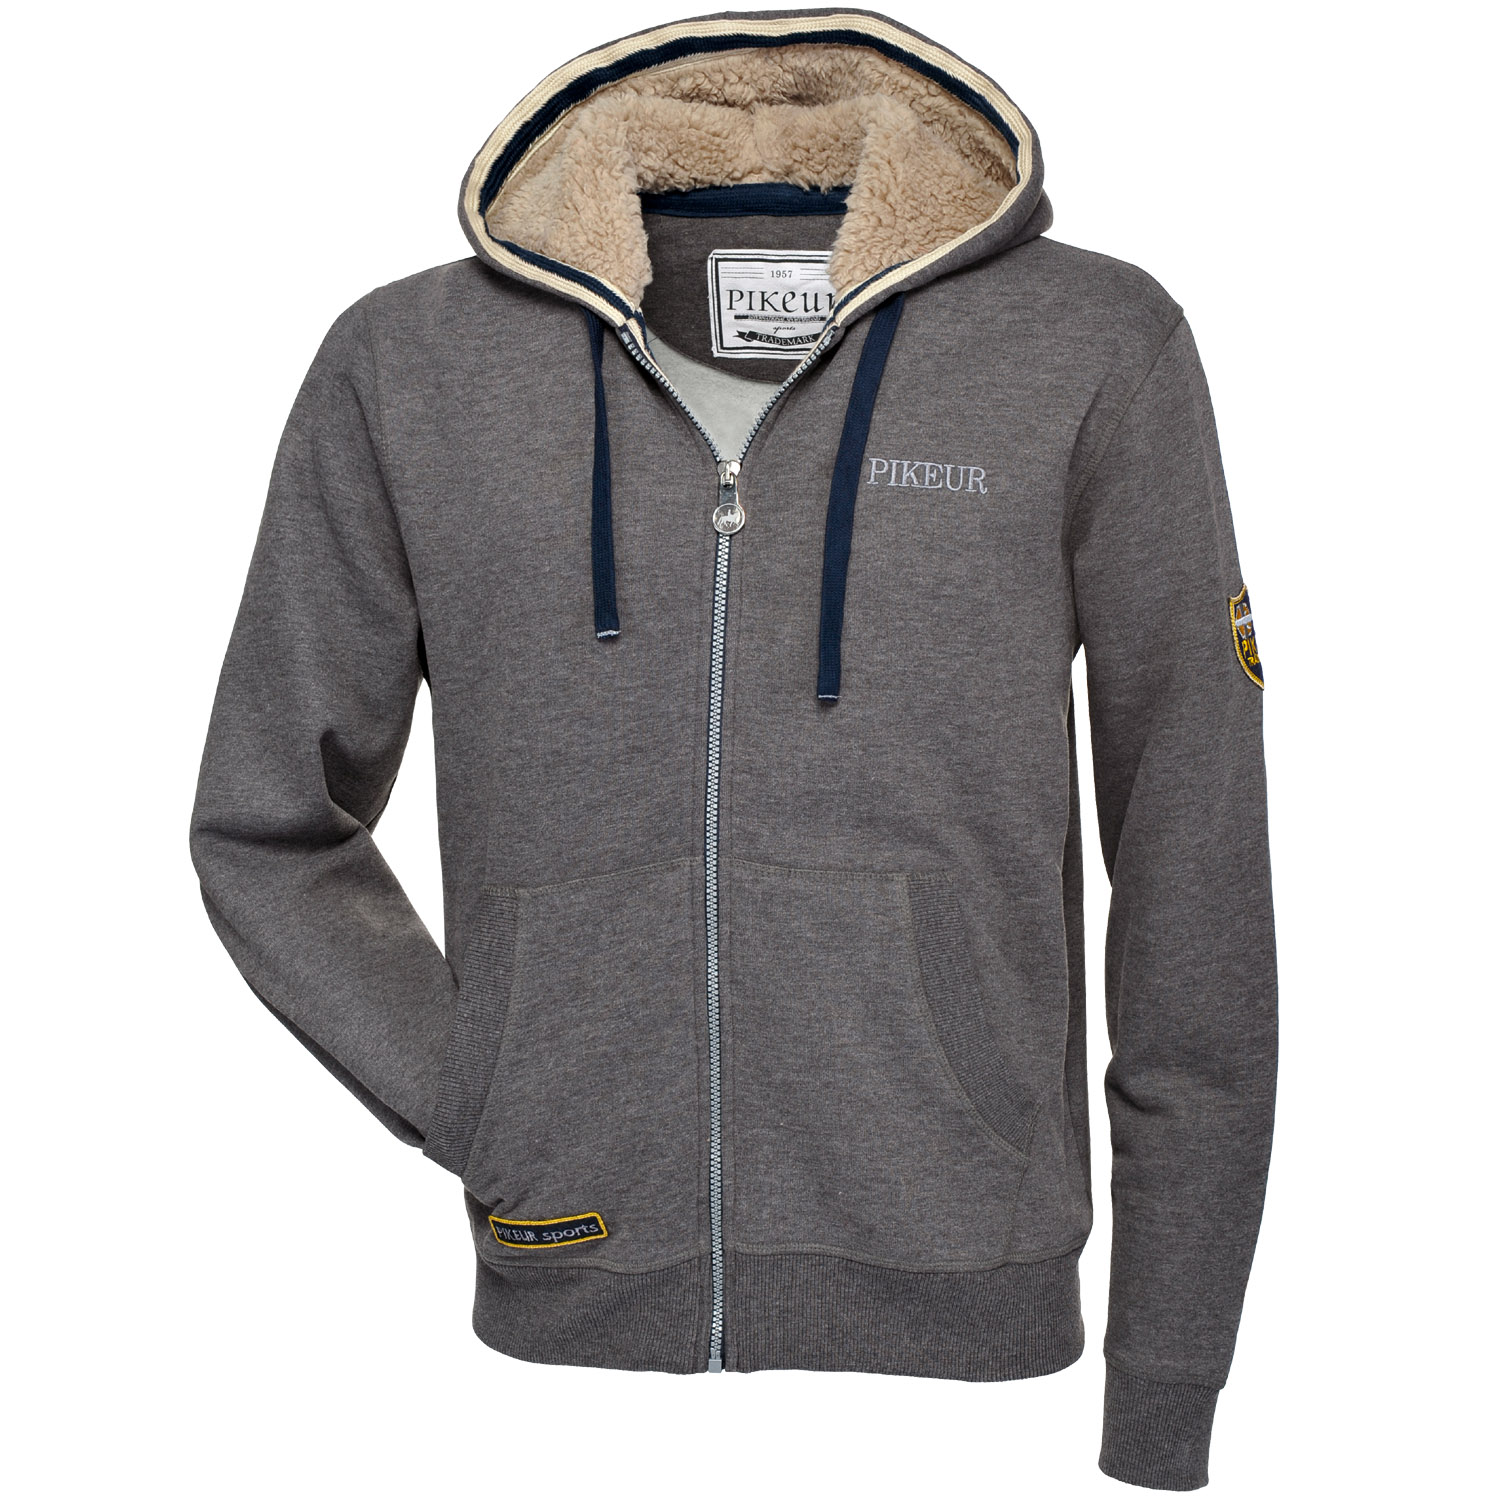 pikeur herren sweat jacke mit kapuze clemens ebay. Black Bedroom Furniture Sets. Home Design Ideas